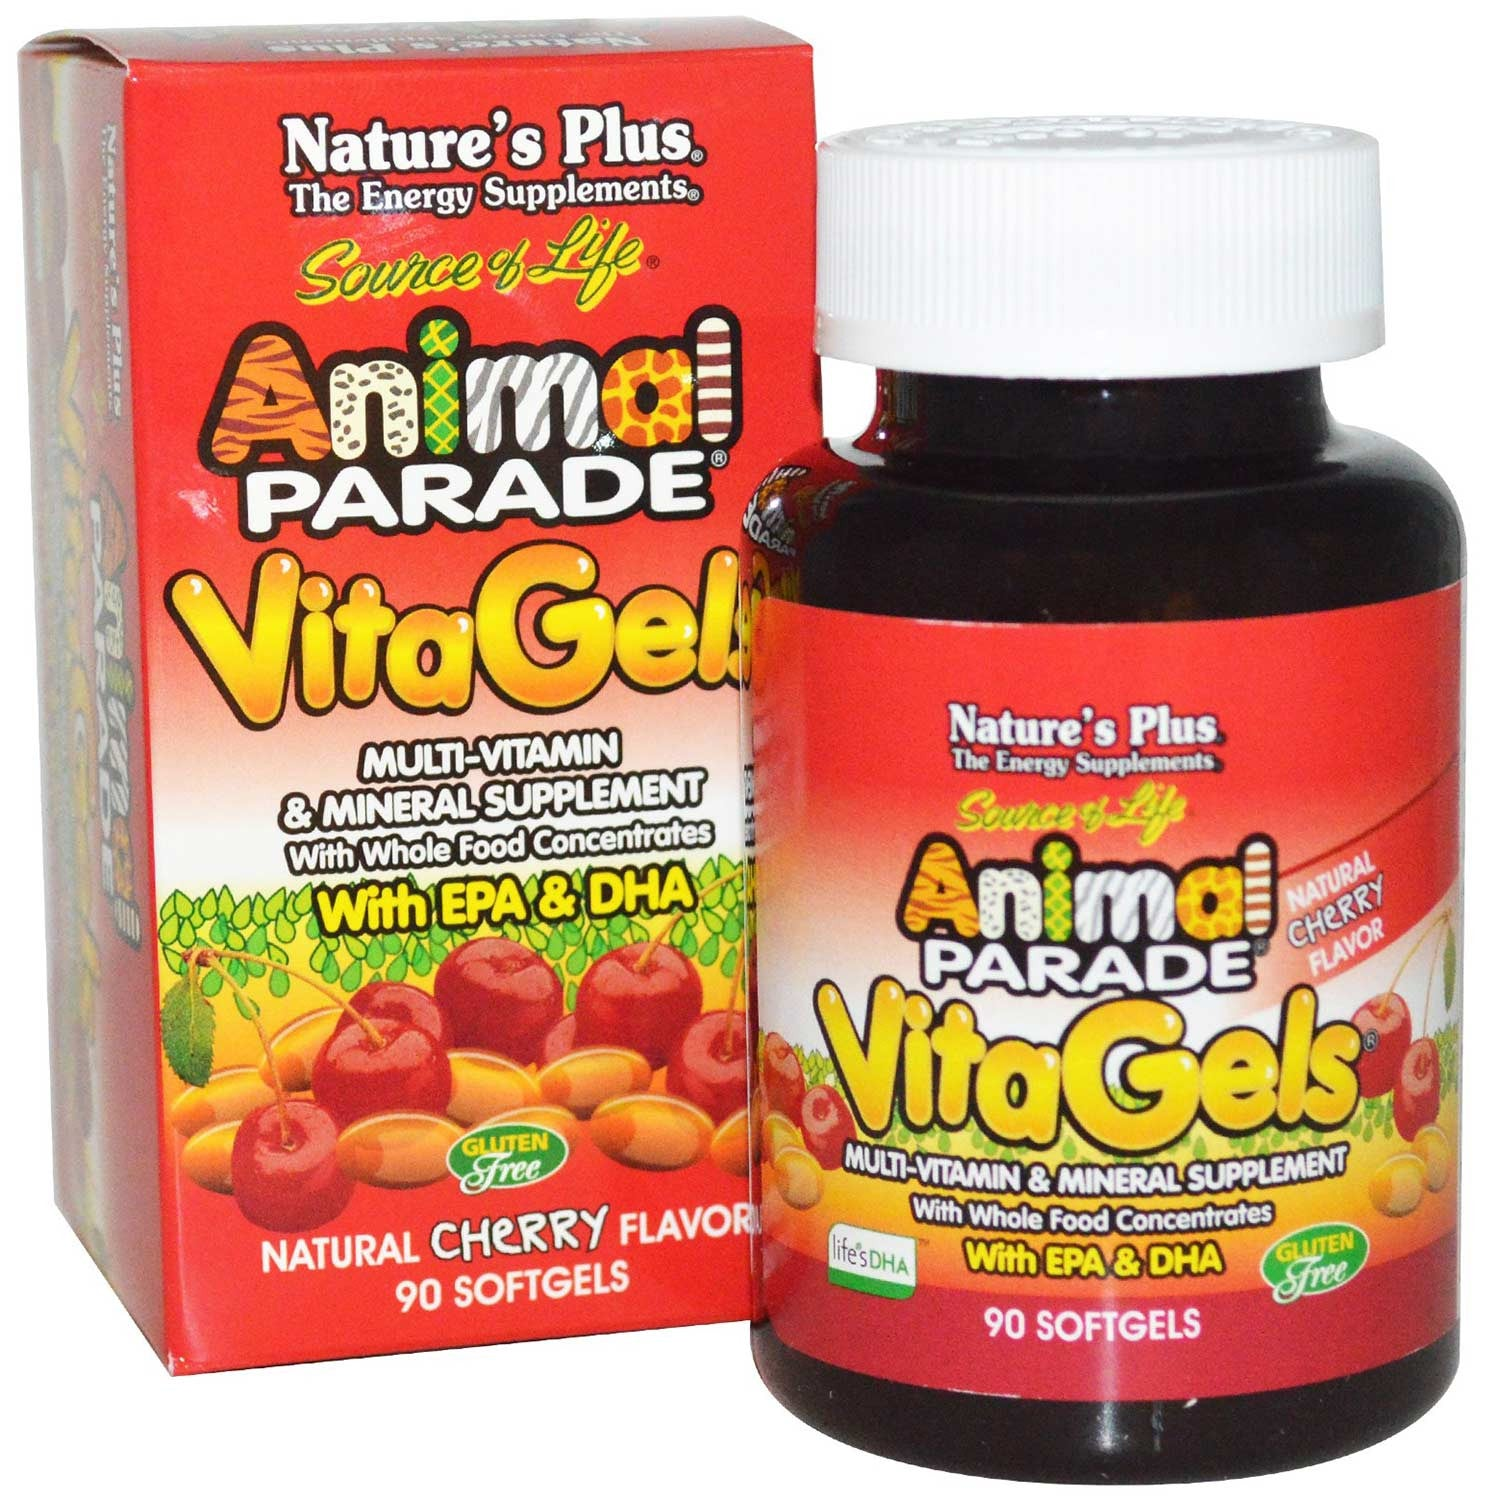 Natures Plus Source of Life Animal Parade VitaGels w/EPA & DHA, 90 sgls.